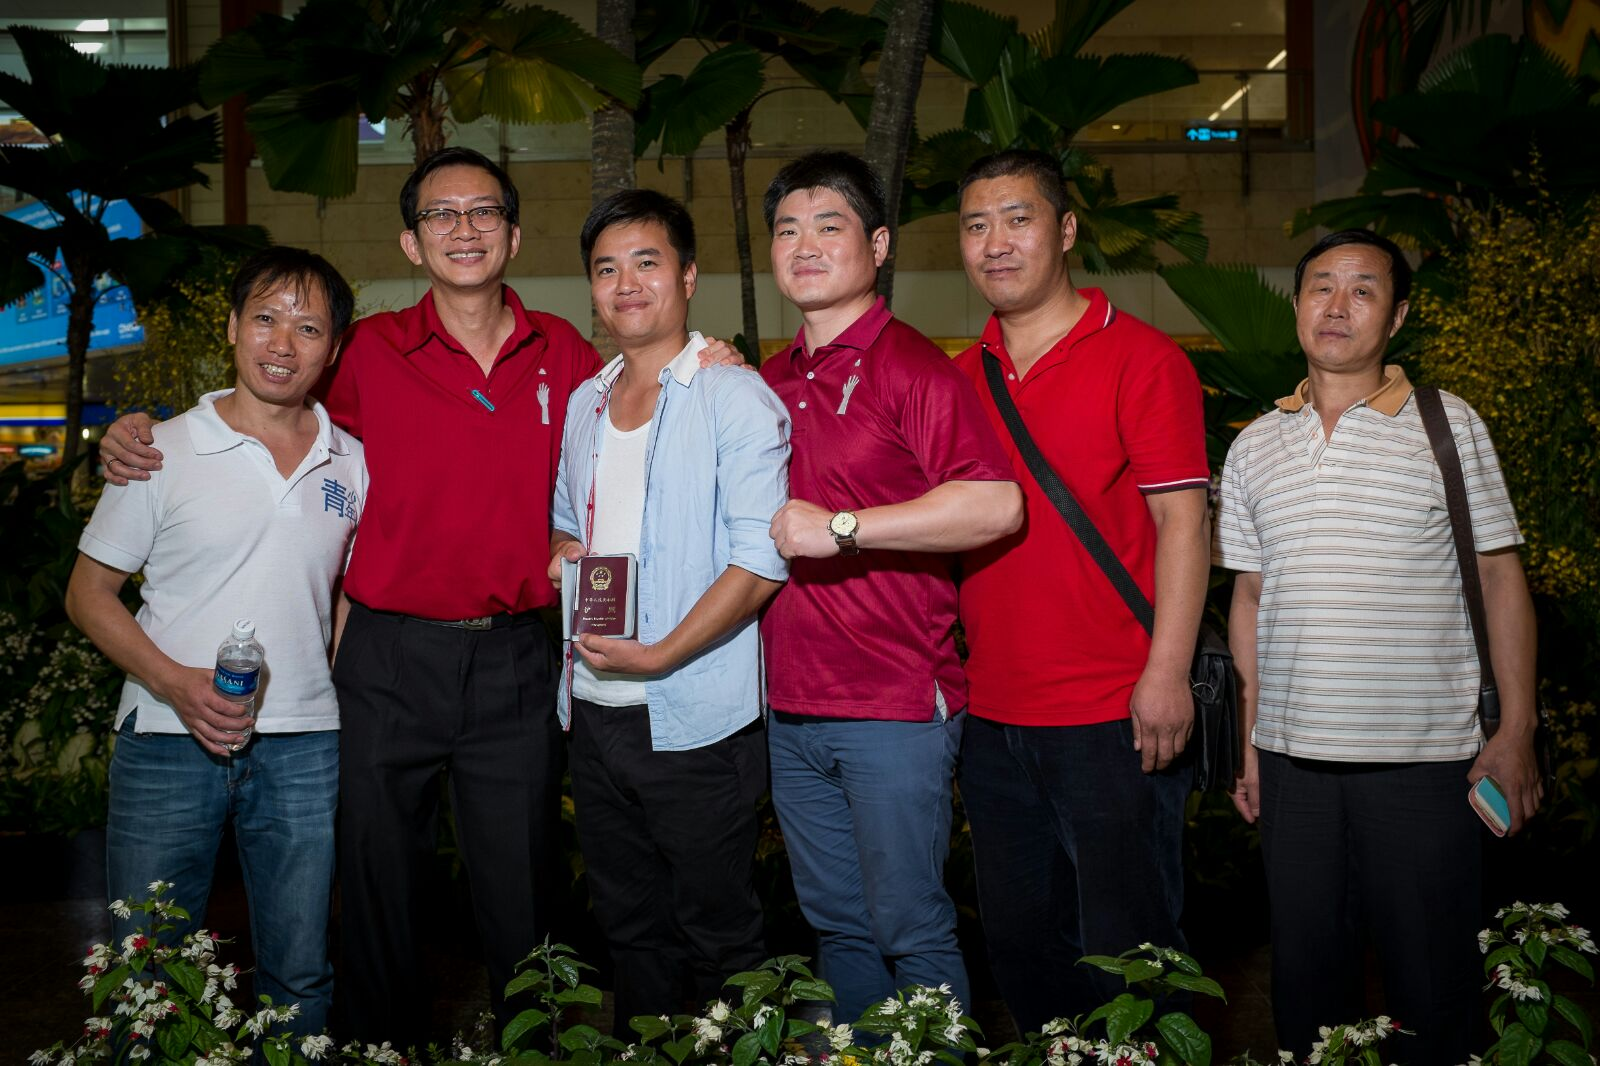 ZHang at Changi Airport being sent off by our case manager, Jeff, and his migrant worker friends.